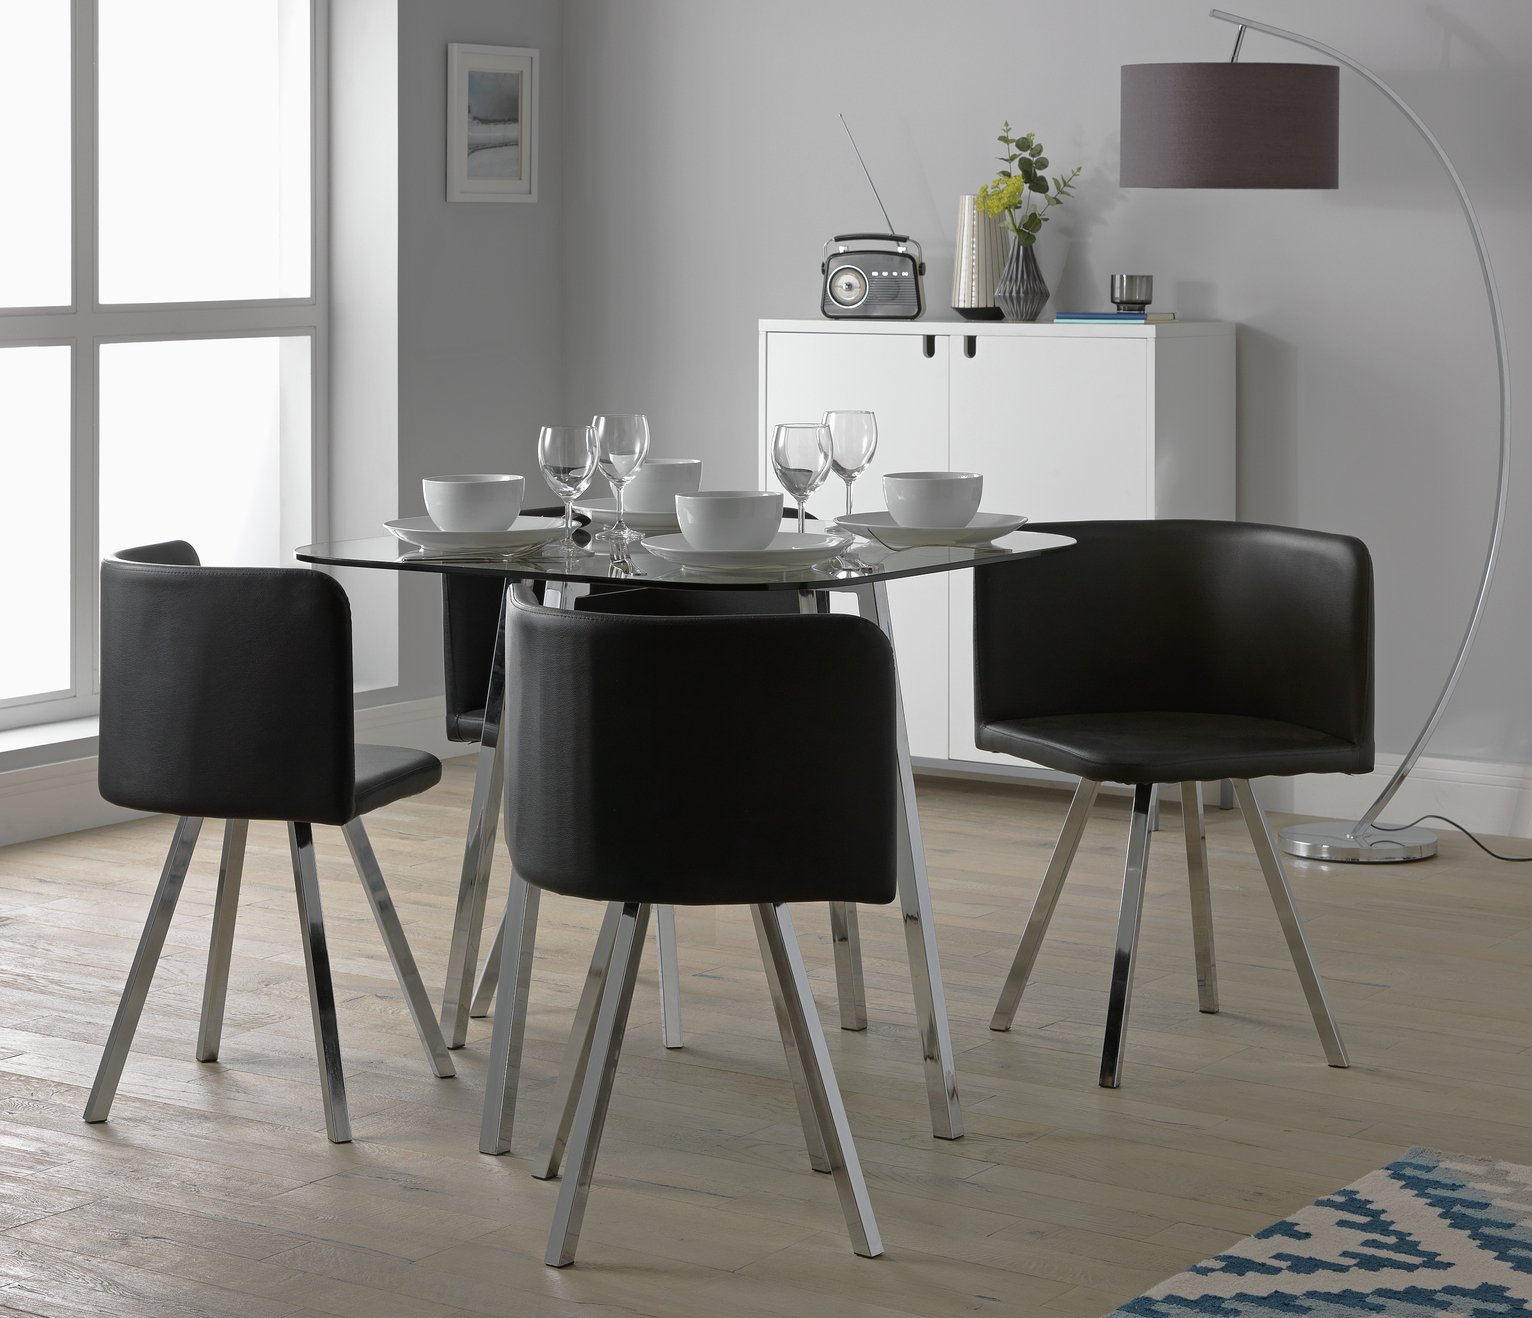 Argos Home Elsie Glass Dining Table and 4 Chairs Reviews